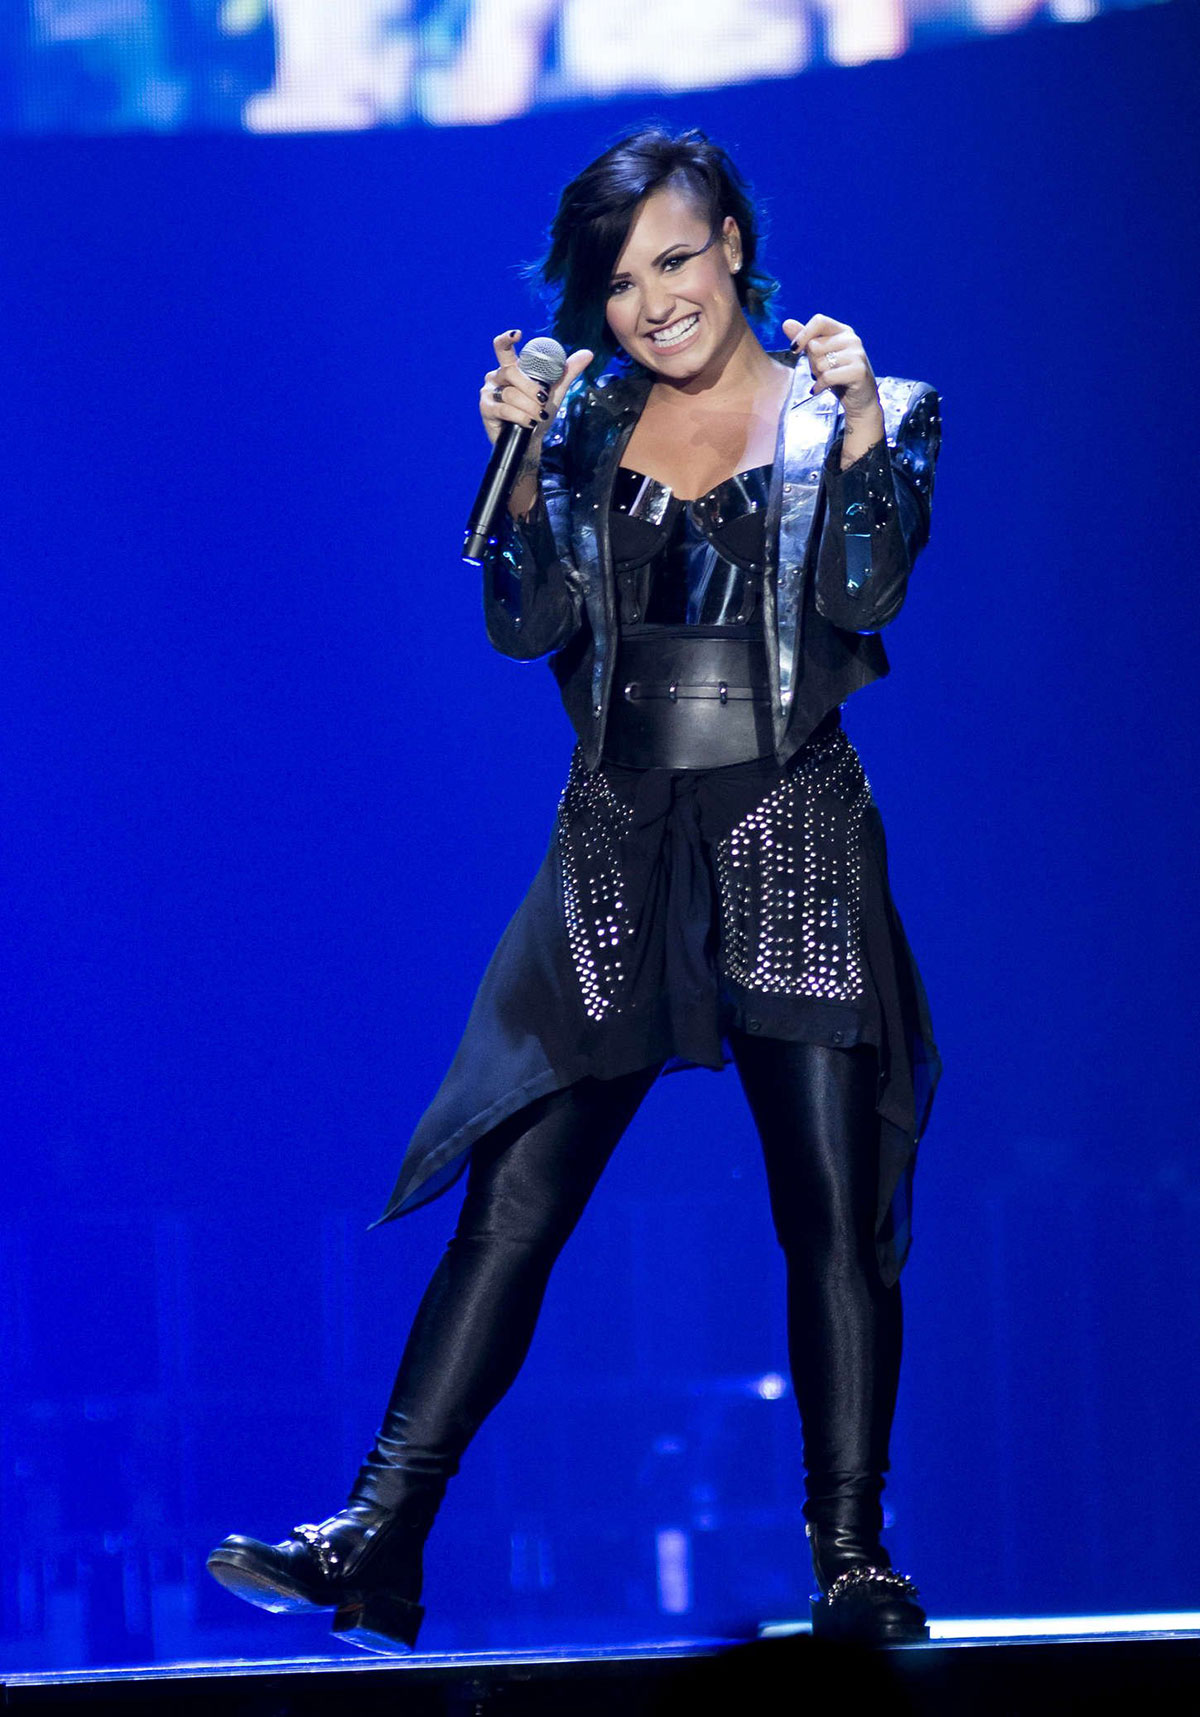 Demi Lovato Performs Neon Lights World Tour Newark 12 Archives Page Hawtcelebs